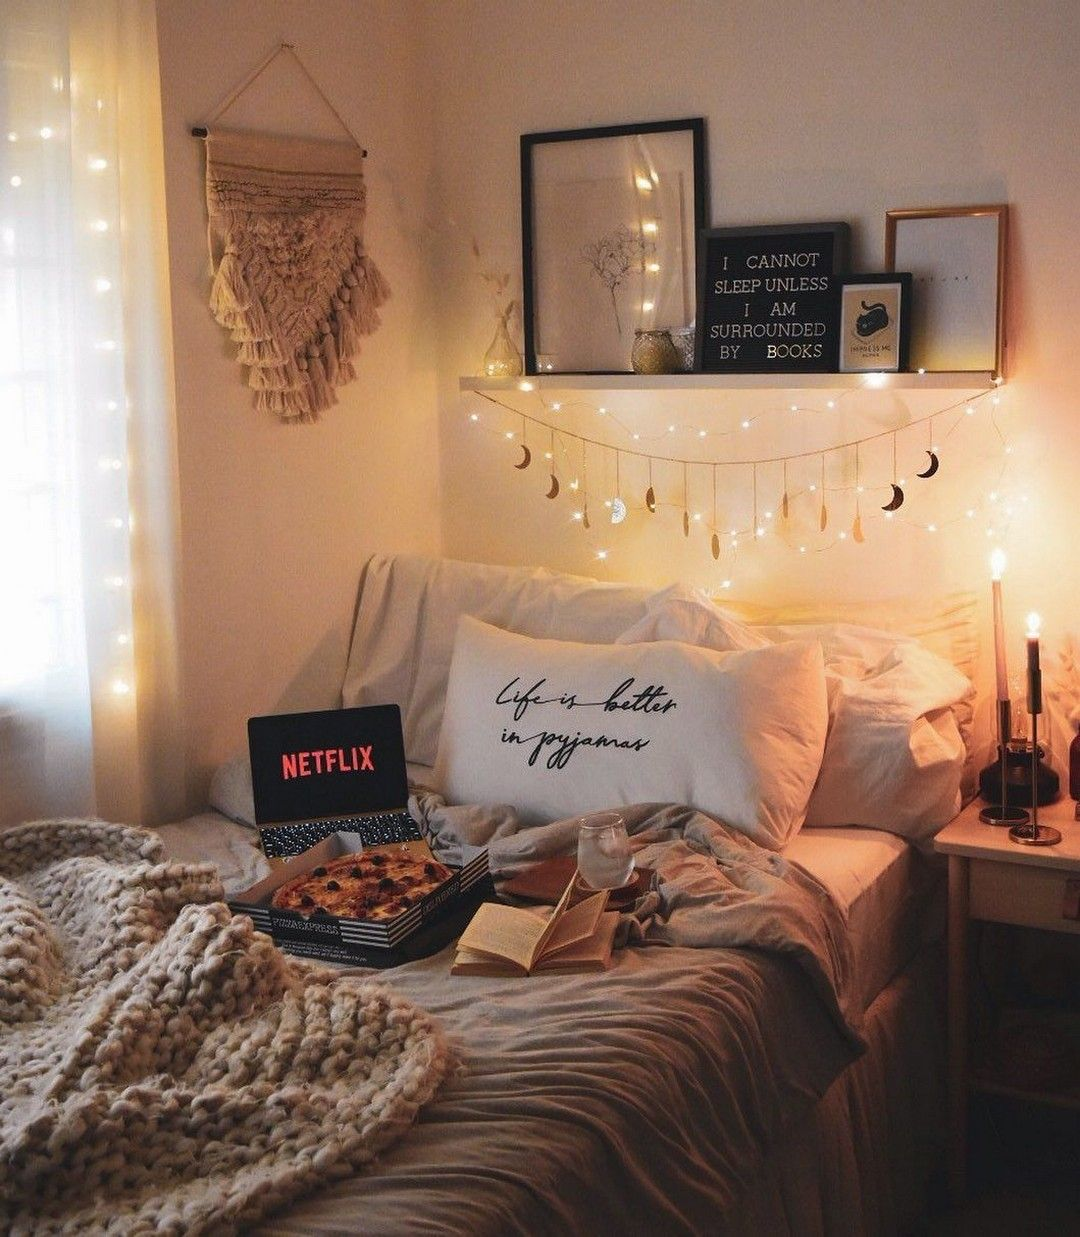 Dorm Room Decorating Ideas on a Budget #collegedormroomideas